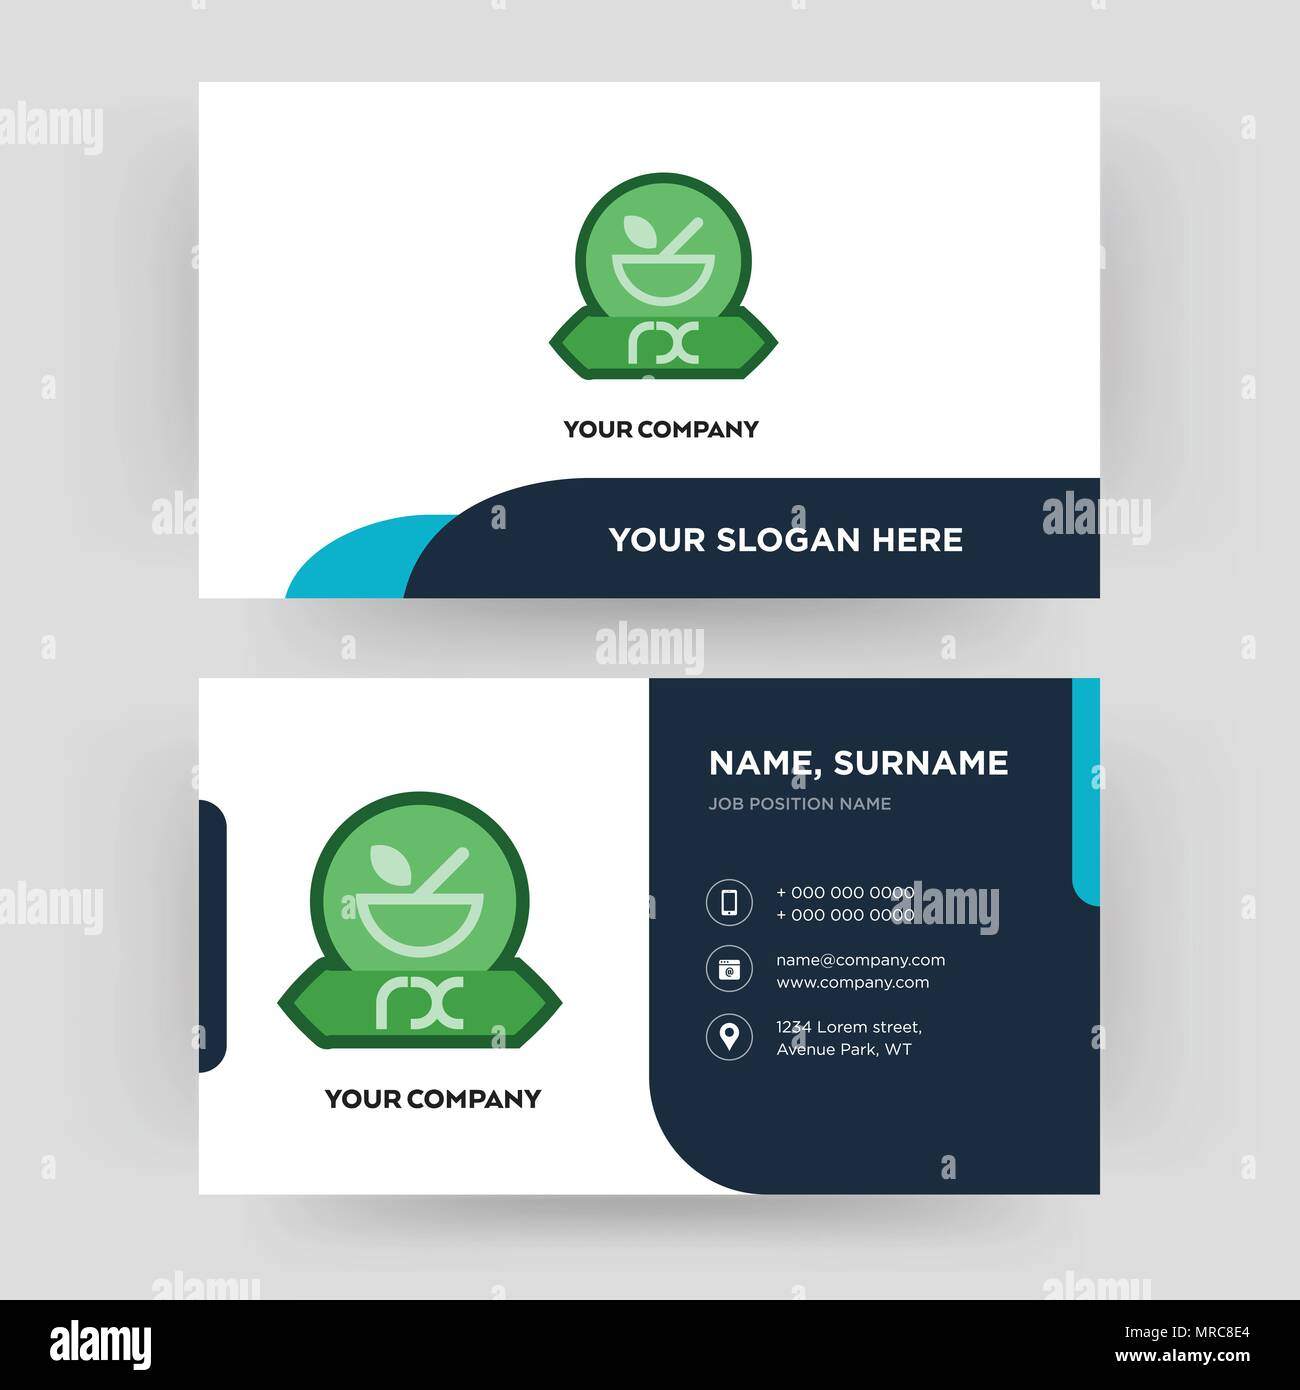 pharmacy business card design template visiting for your company